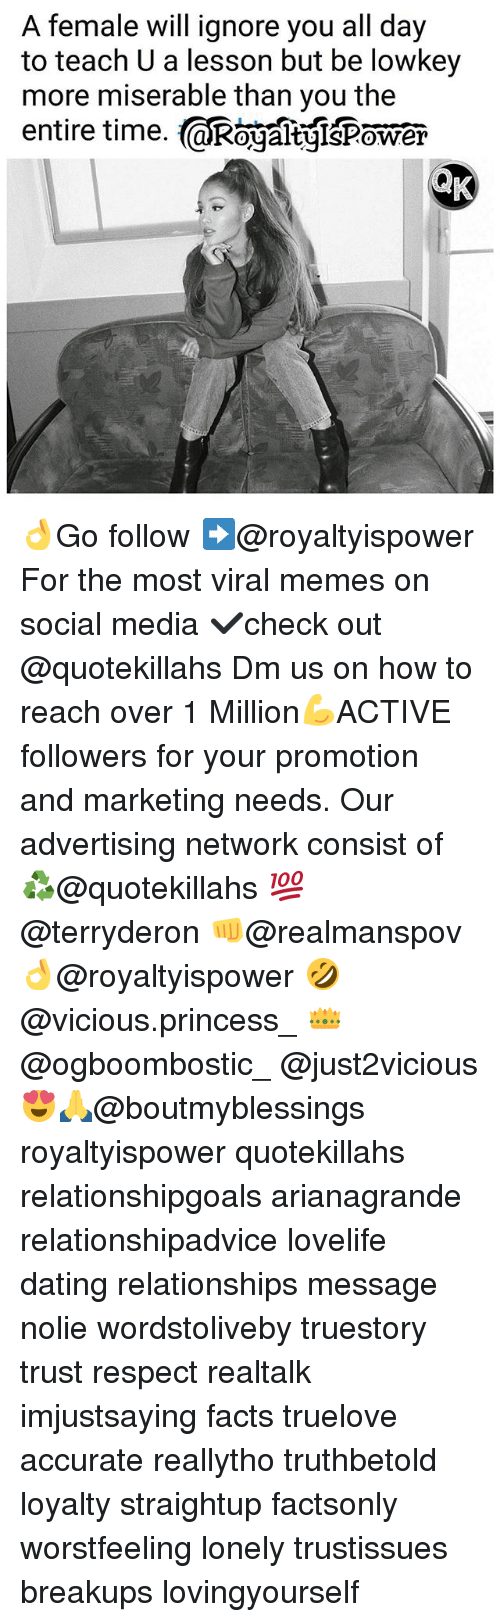 Dating, Facts, and Memes: A female will ignore you all day  to teach U a lesson but be lowkey  more miserable than you the  entire time. aRogaltgisPower  0 👌Go follow ➡@royaltyispower For the most viral memes on social media ✔check out @quotekillahs Dm us on how to reach over 1 Million💪ACTIVE followers for your promotion and marketing needs. Our advertising network consist of ♻@quotekillahs 💯@terryderon 👊@realmanspov 👌@royaltyispower 🤣@vicious.princess_ 👑@ogboombostic_ @just2vicious😍🙏@boutmyblessings royaltyispower quotekillahs relationshipgoals arianagrande relationshipadvice lovelife dating relationships message nolie wordstoliveby truestory trust respect realtalk imjustsaying facts truelove accurate reallytho truthbetold loyalty straightup factsonly worstfeeling lonely trustissues breakups lovingyourself